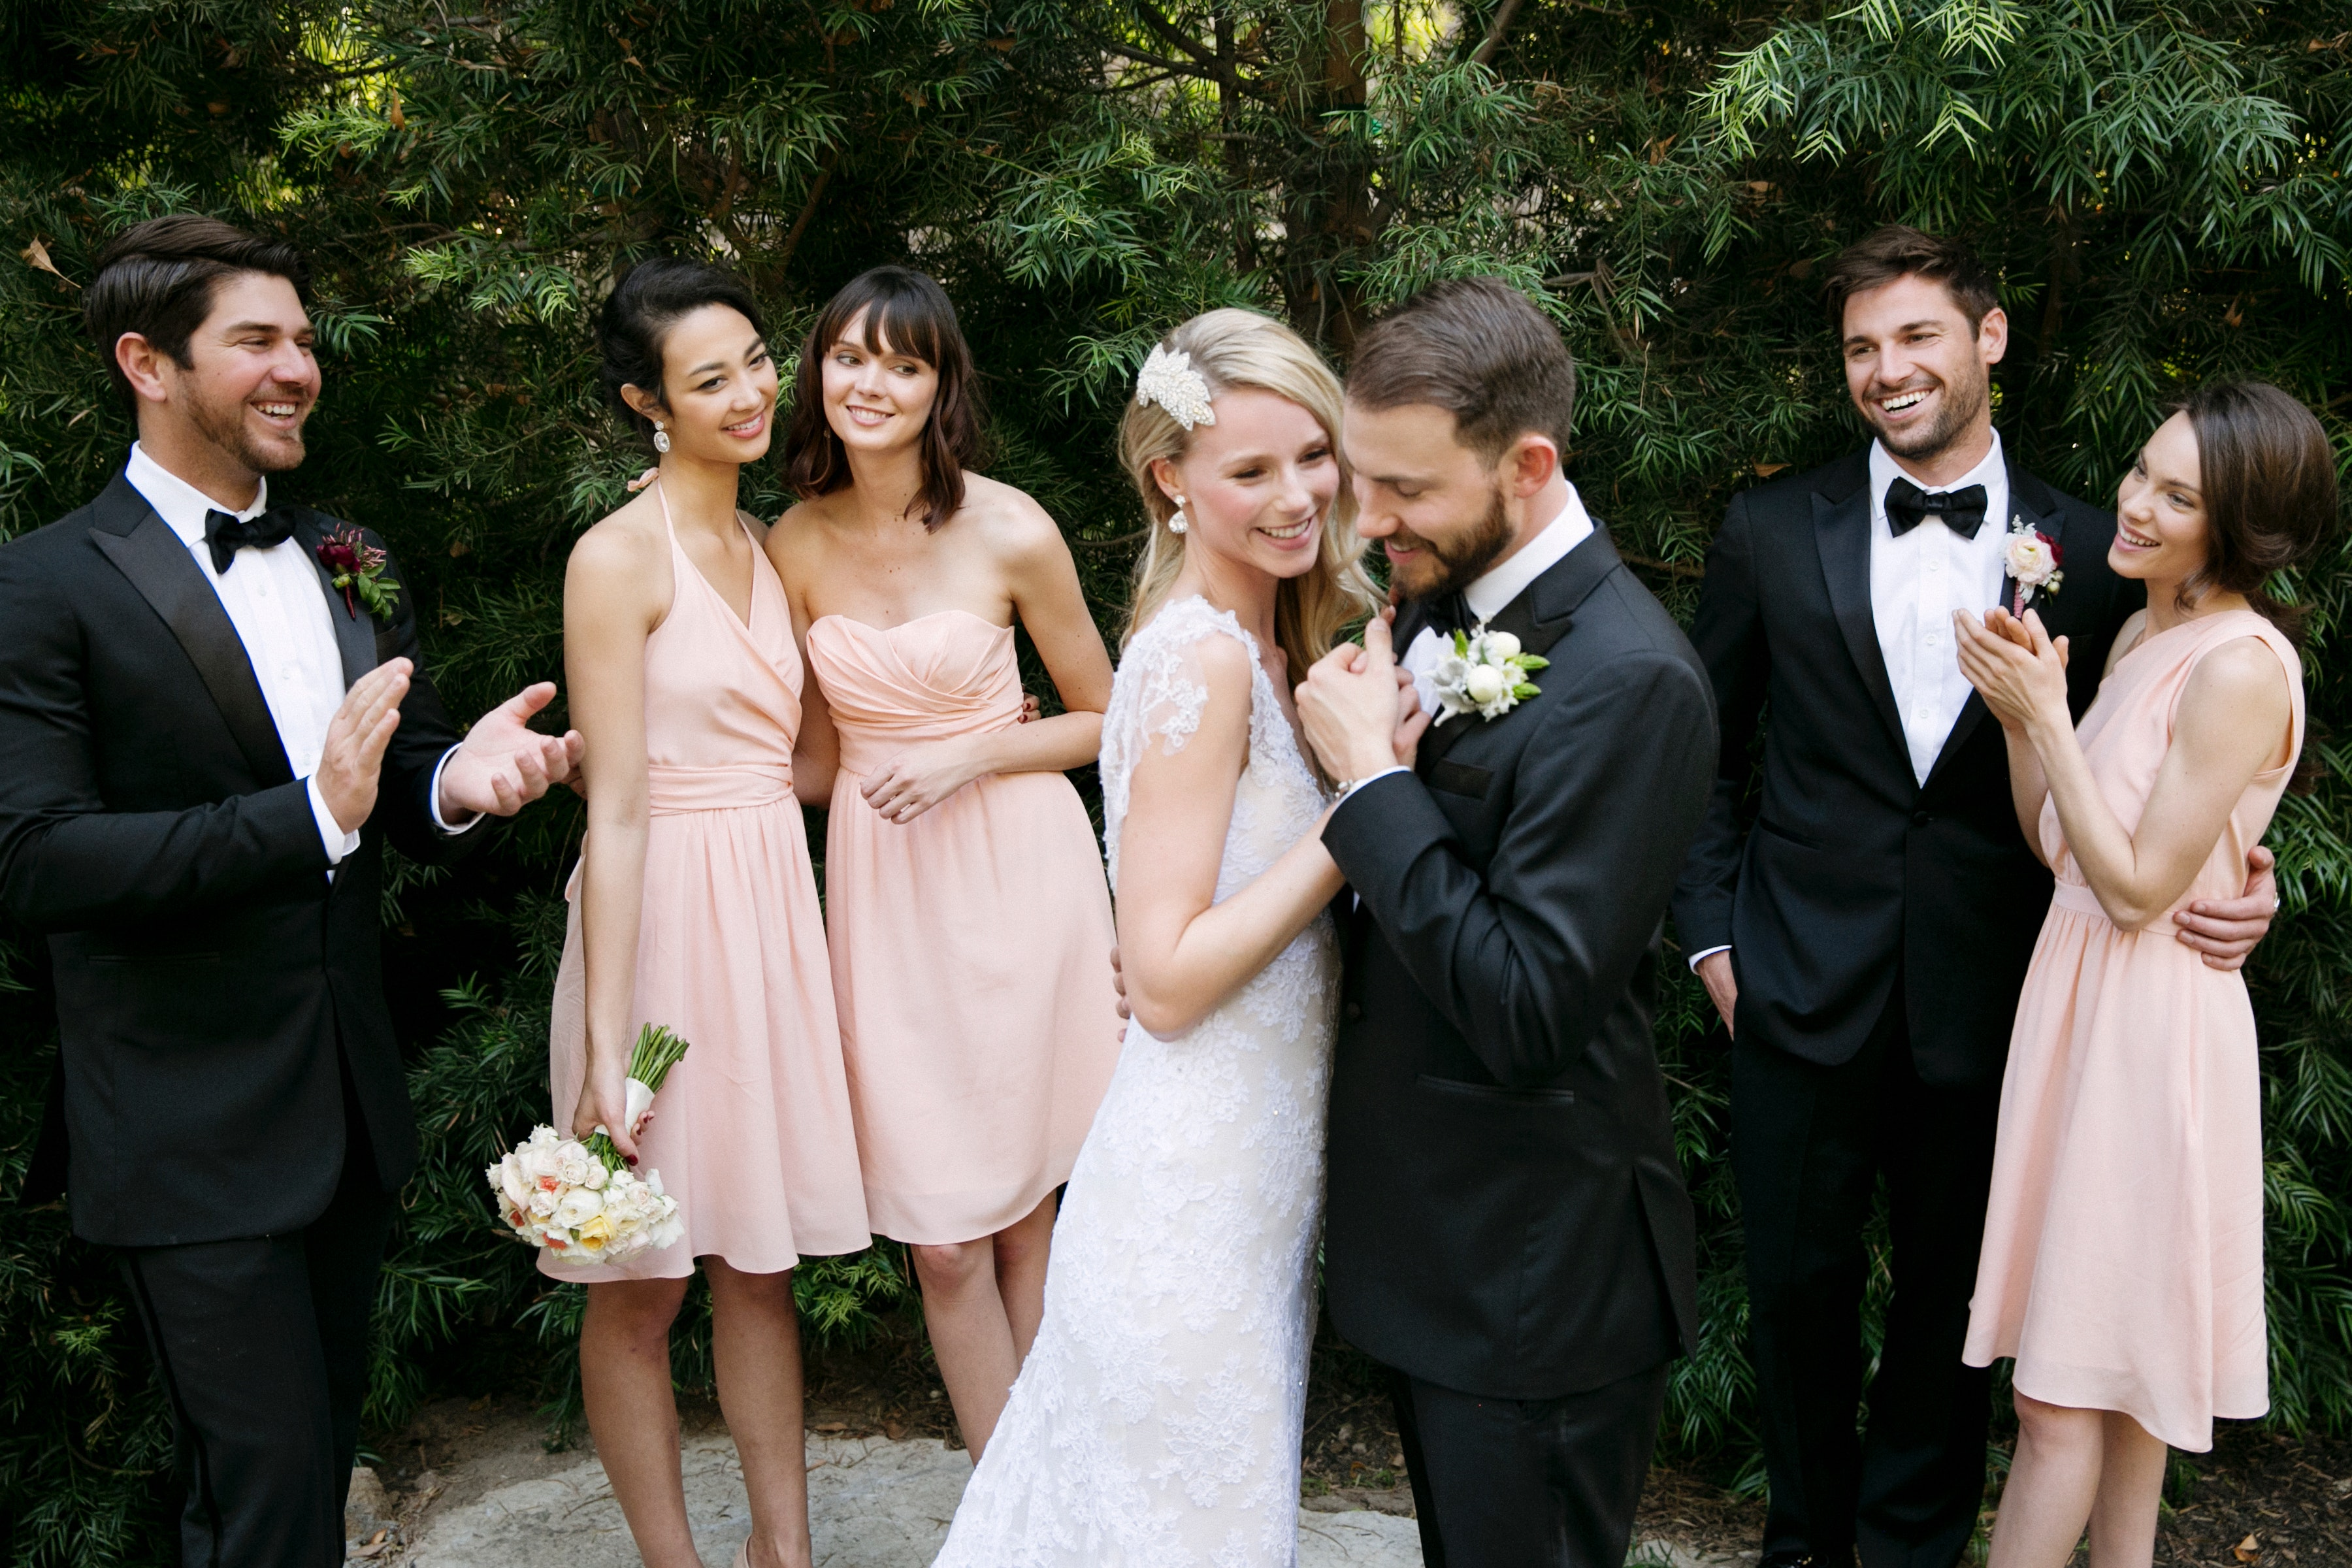 8 reasons renting bridesmaid dresses is brilliant plus how to 8 reasons renting bridesmaid dresses is brilliant plus how to convince your bride to get on board ombrellifo Image collections